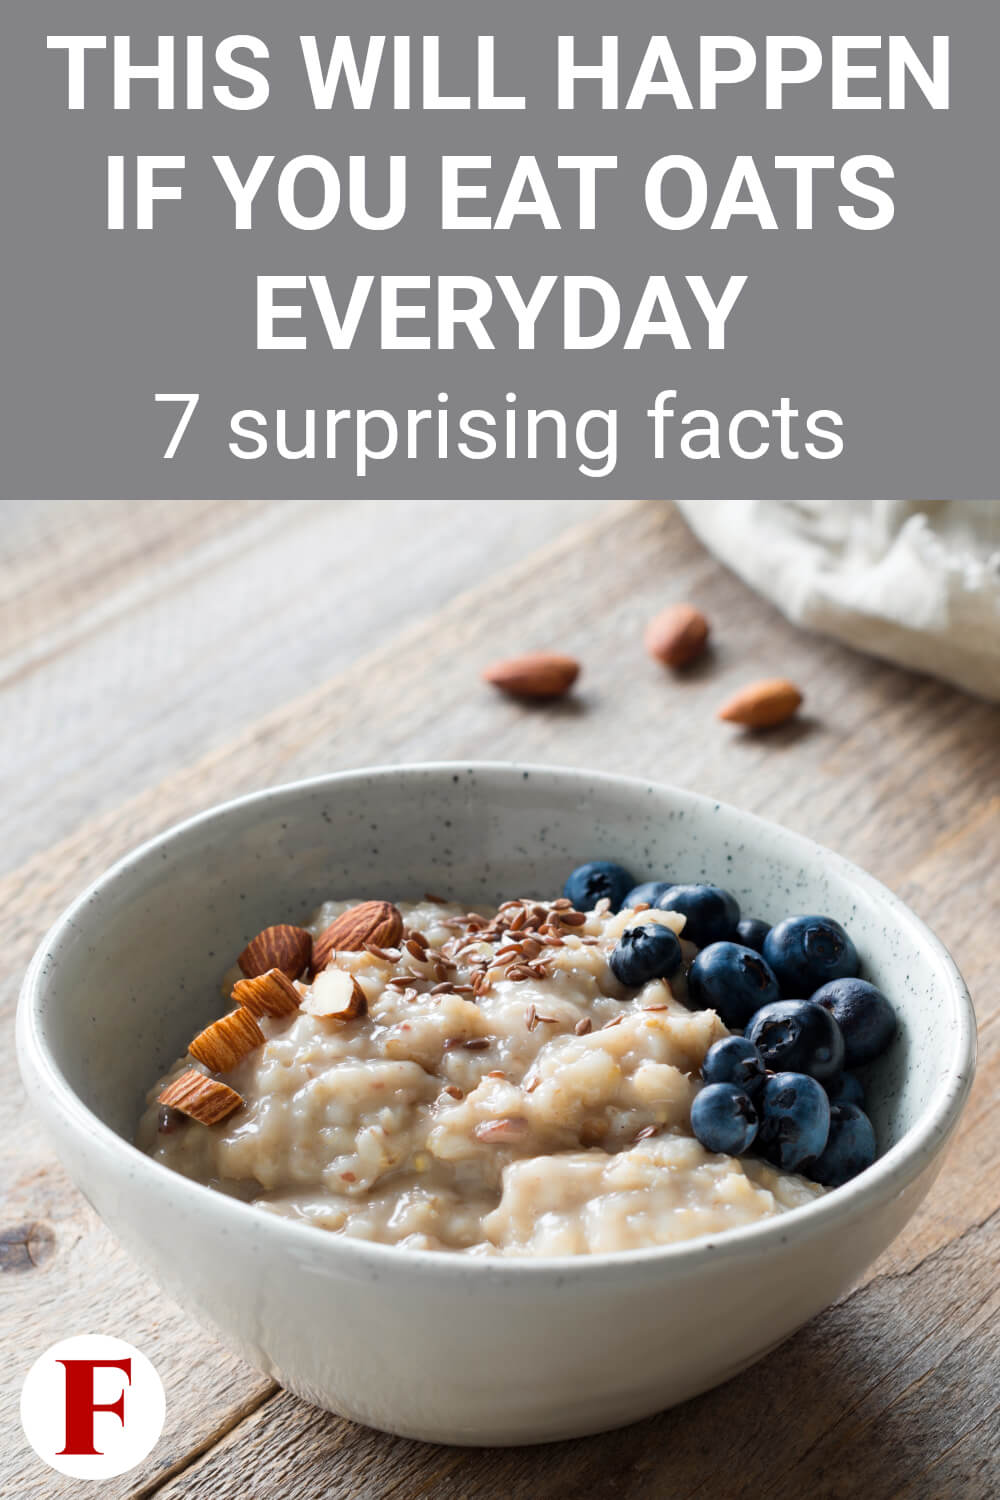 Oats are healthy and good for you